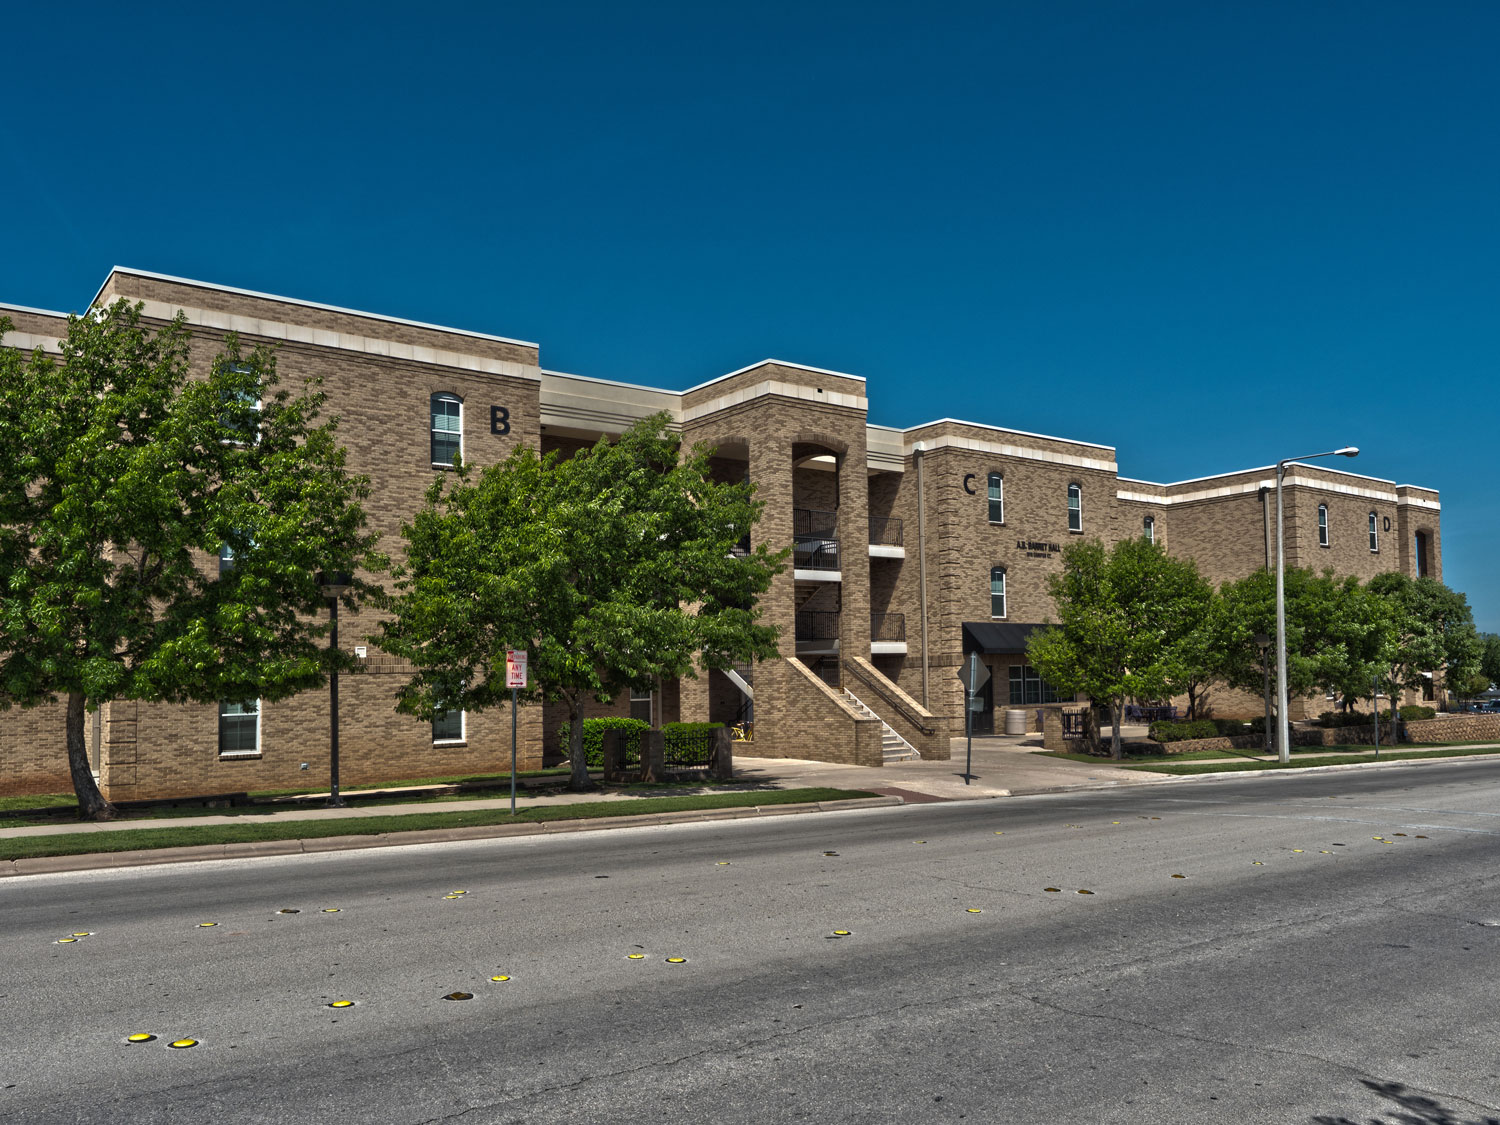 Exterior photo of Barret Hall